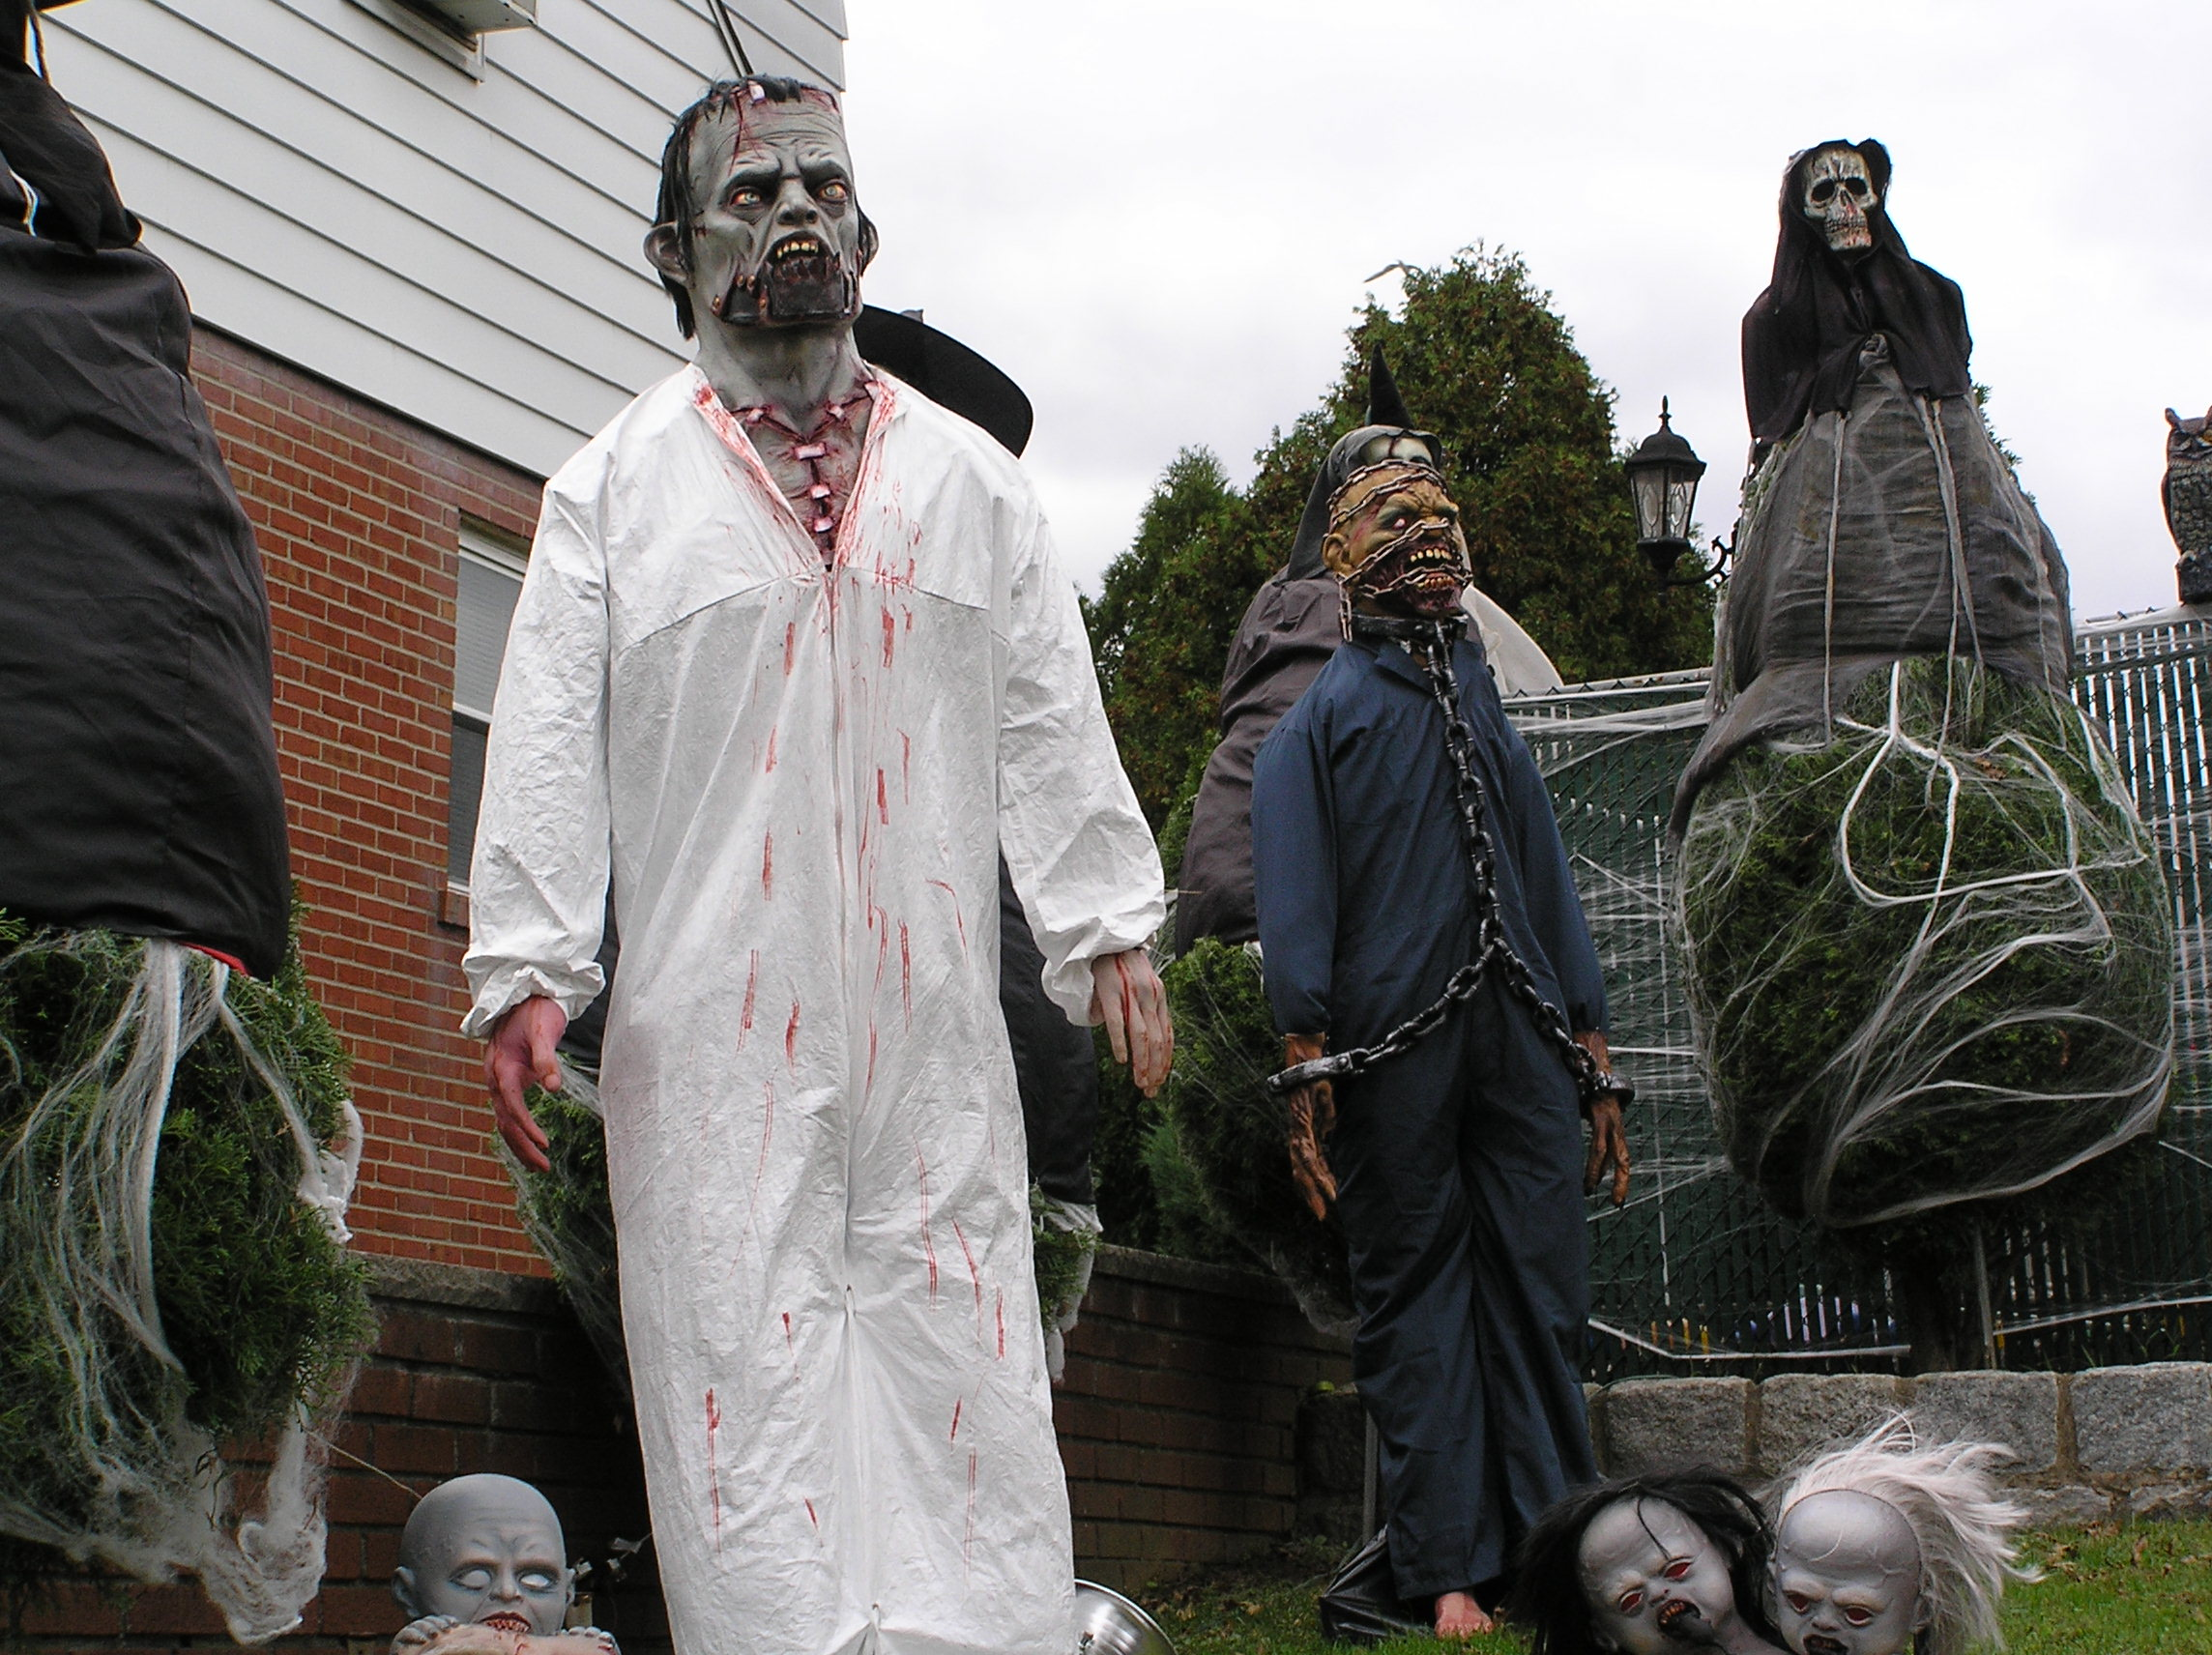 file:scary halloween costumes 2011 - wikimedia commons